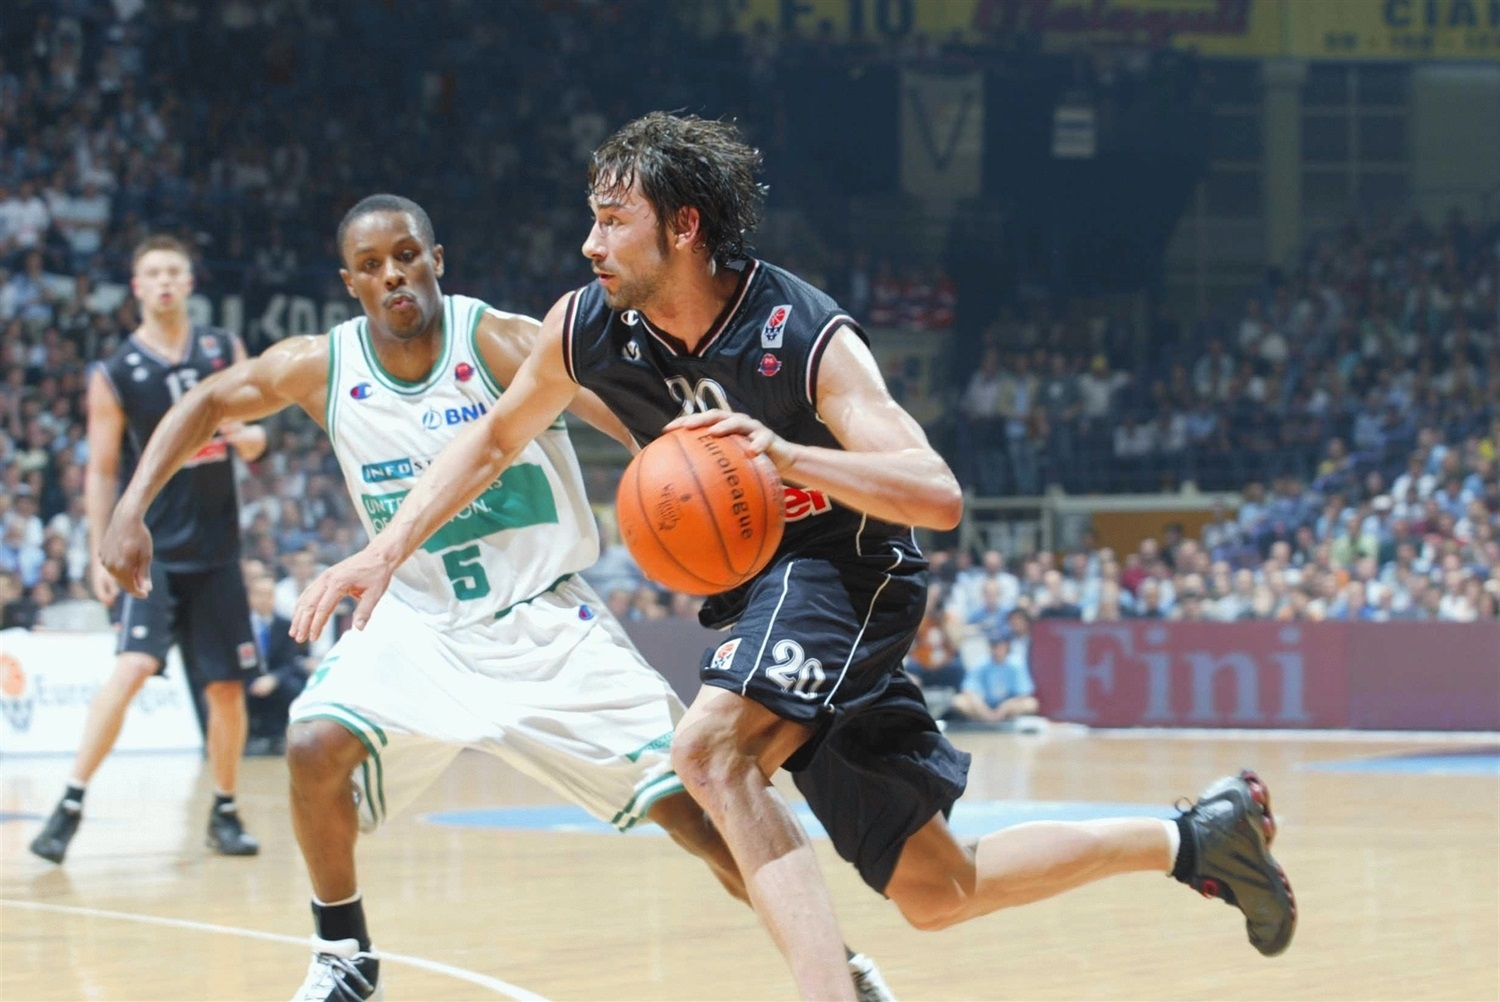 Marko Jaric - Kinder Virtus Bologna - Final Four Bologna 2002 - EB01